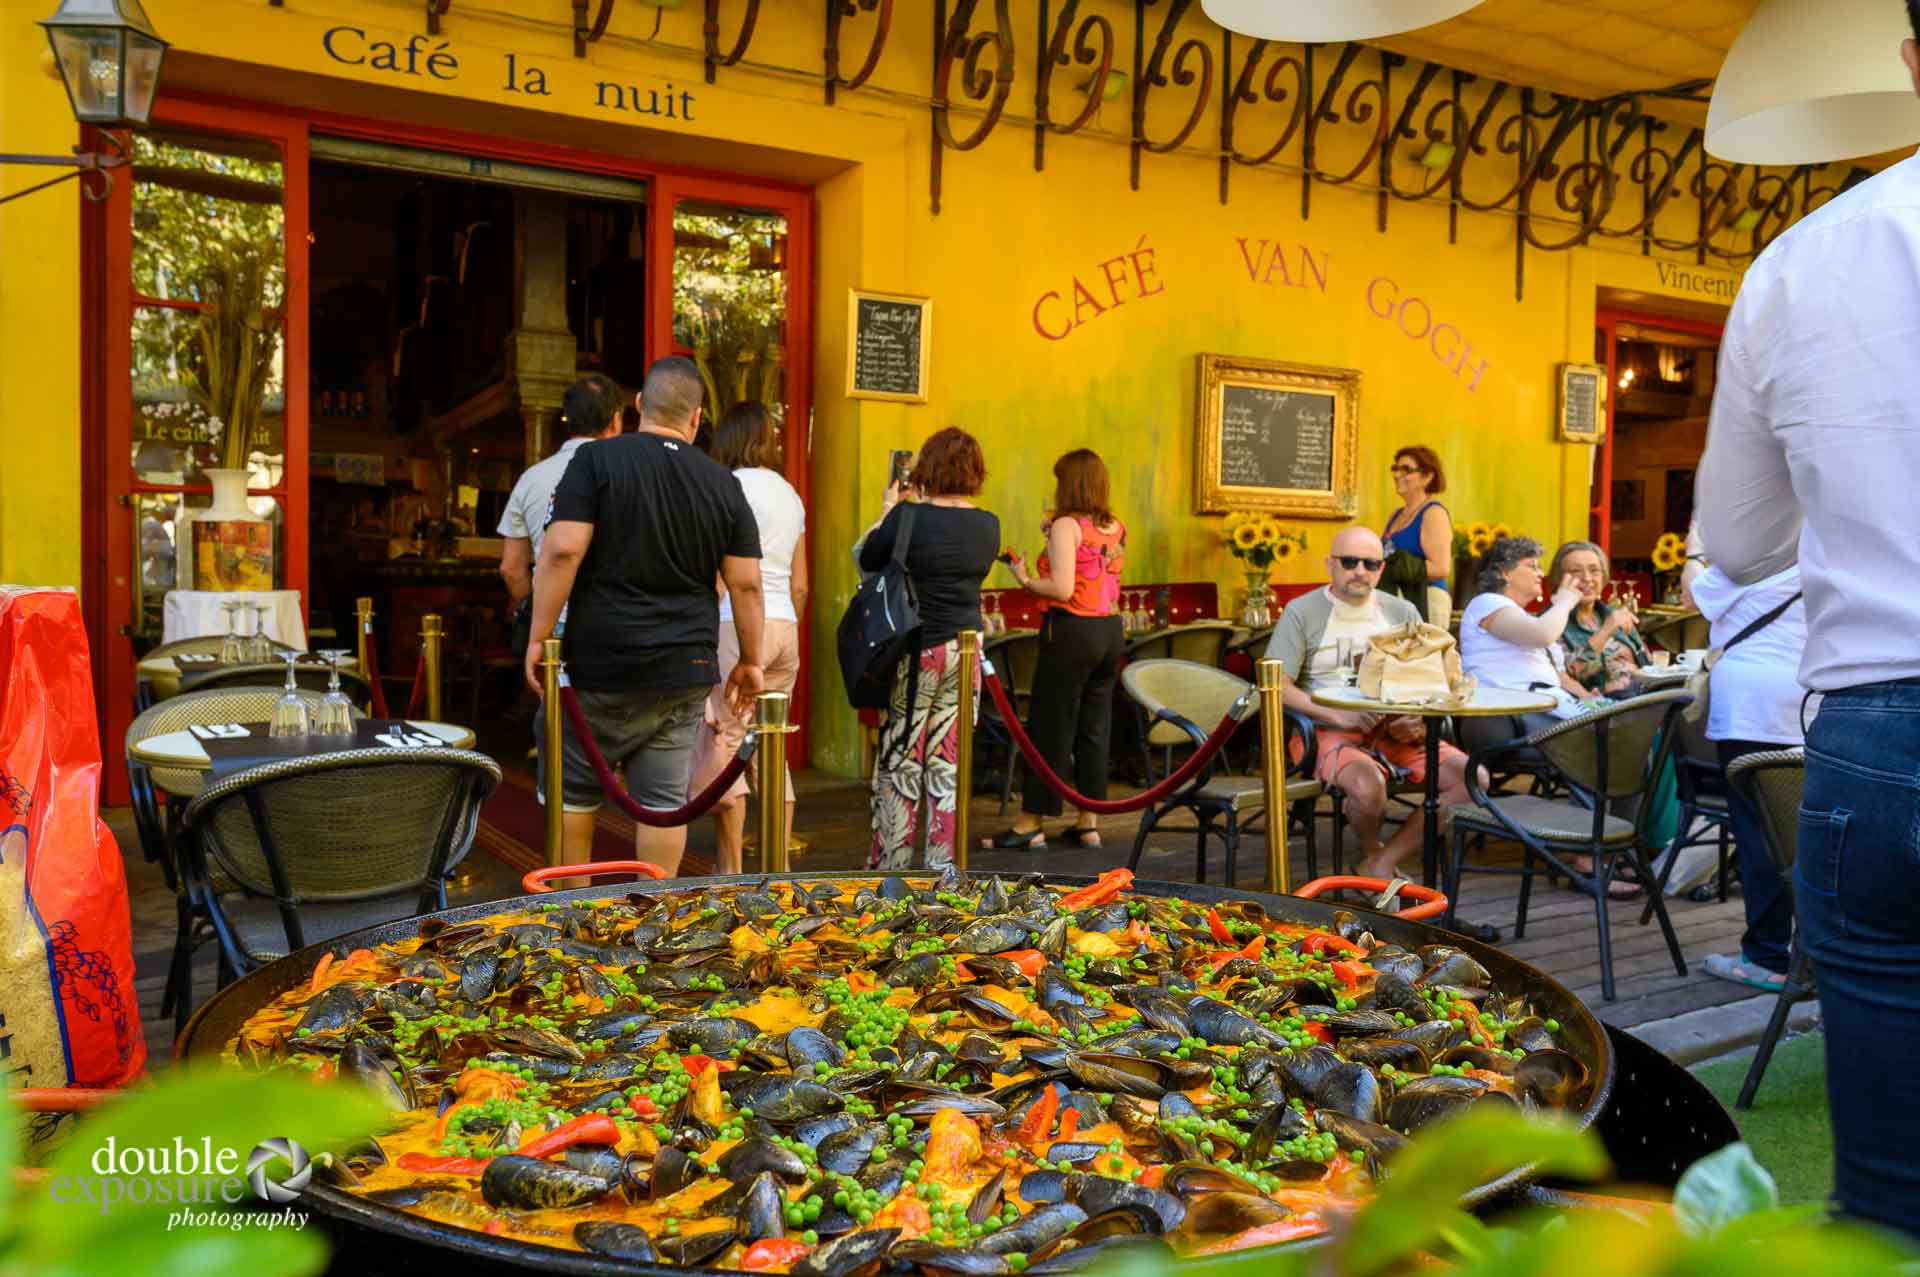 Cafe Van Gogh in Arles, France is busy with customers